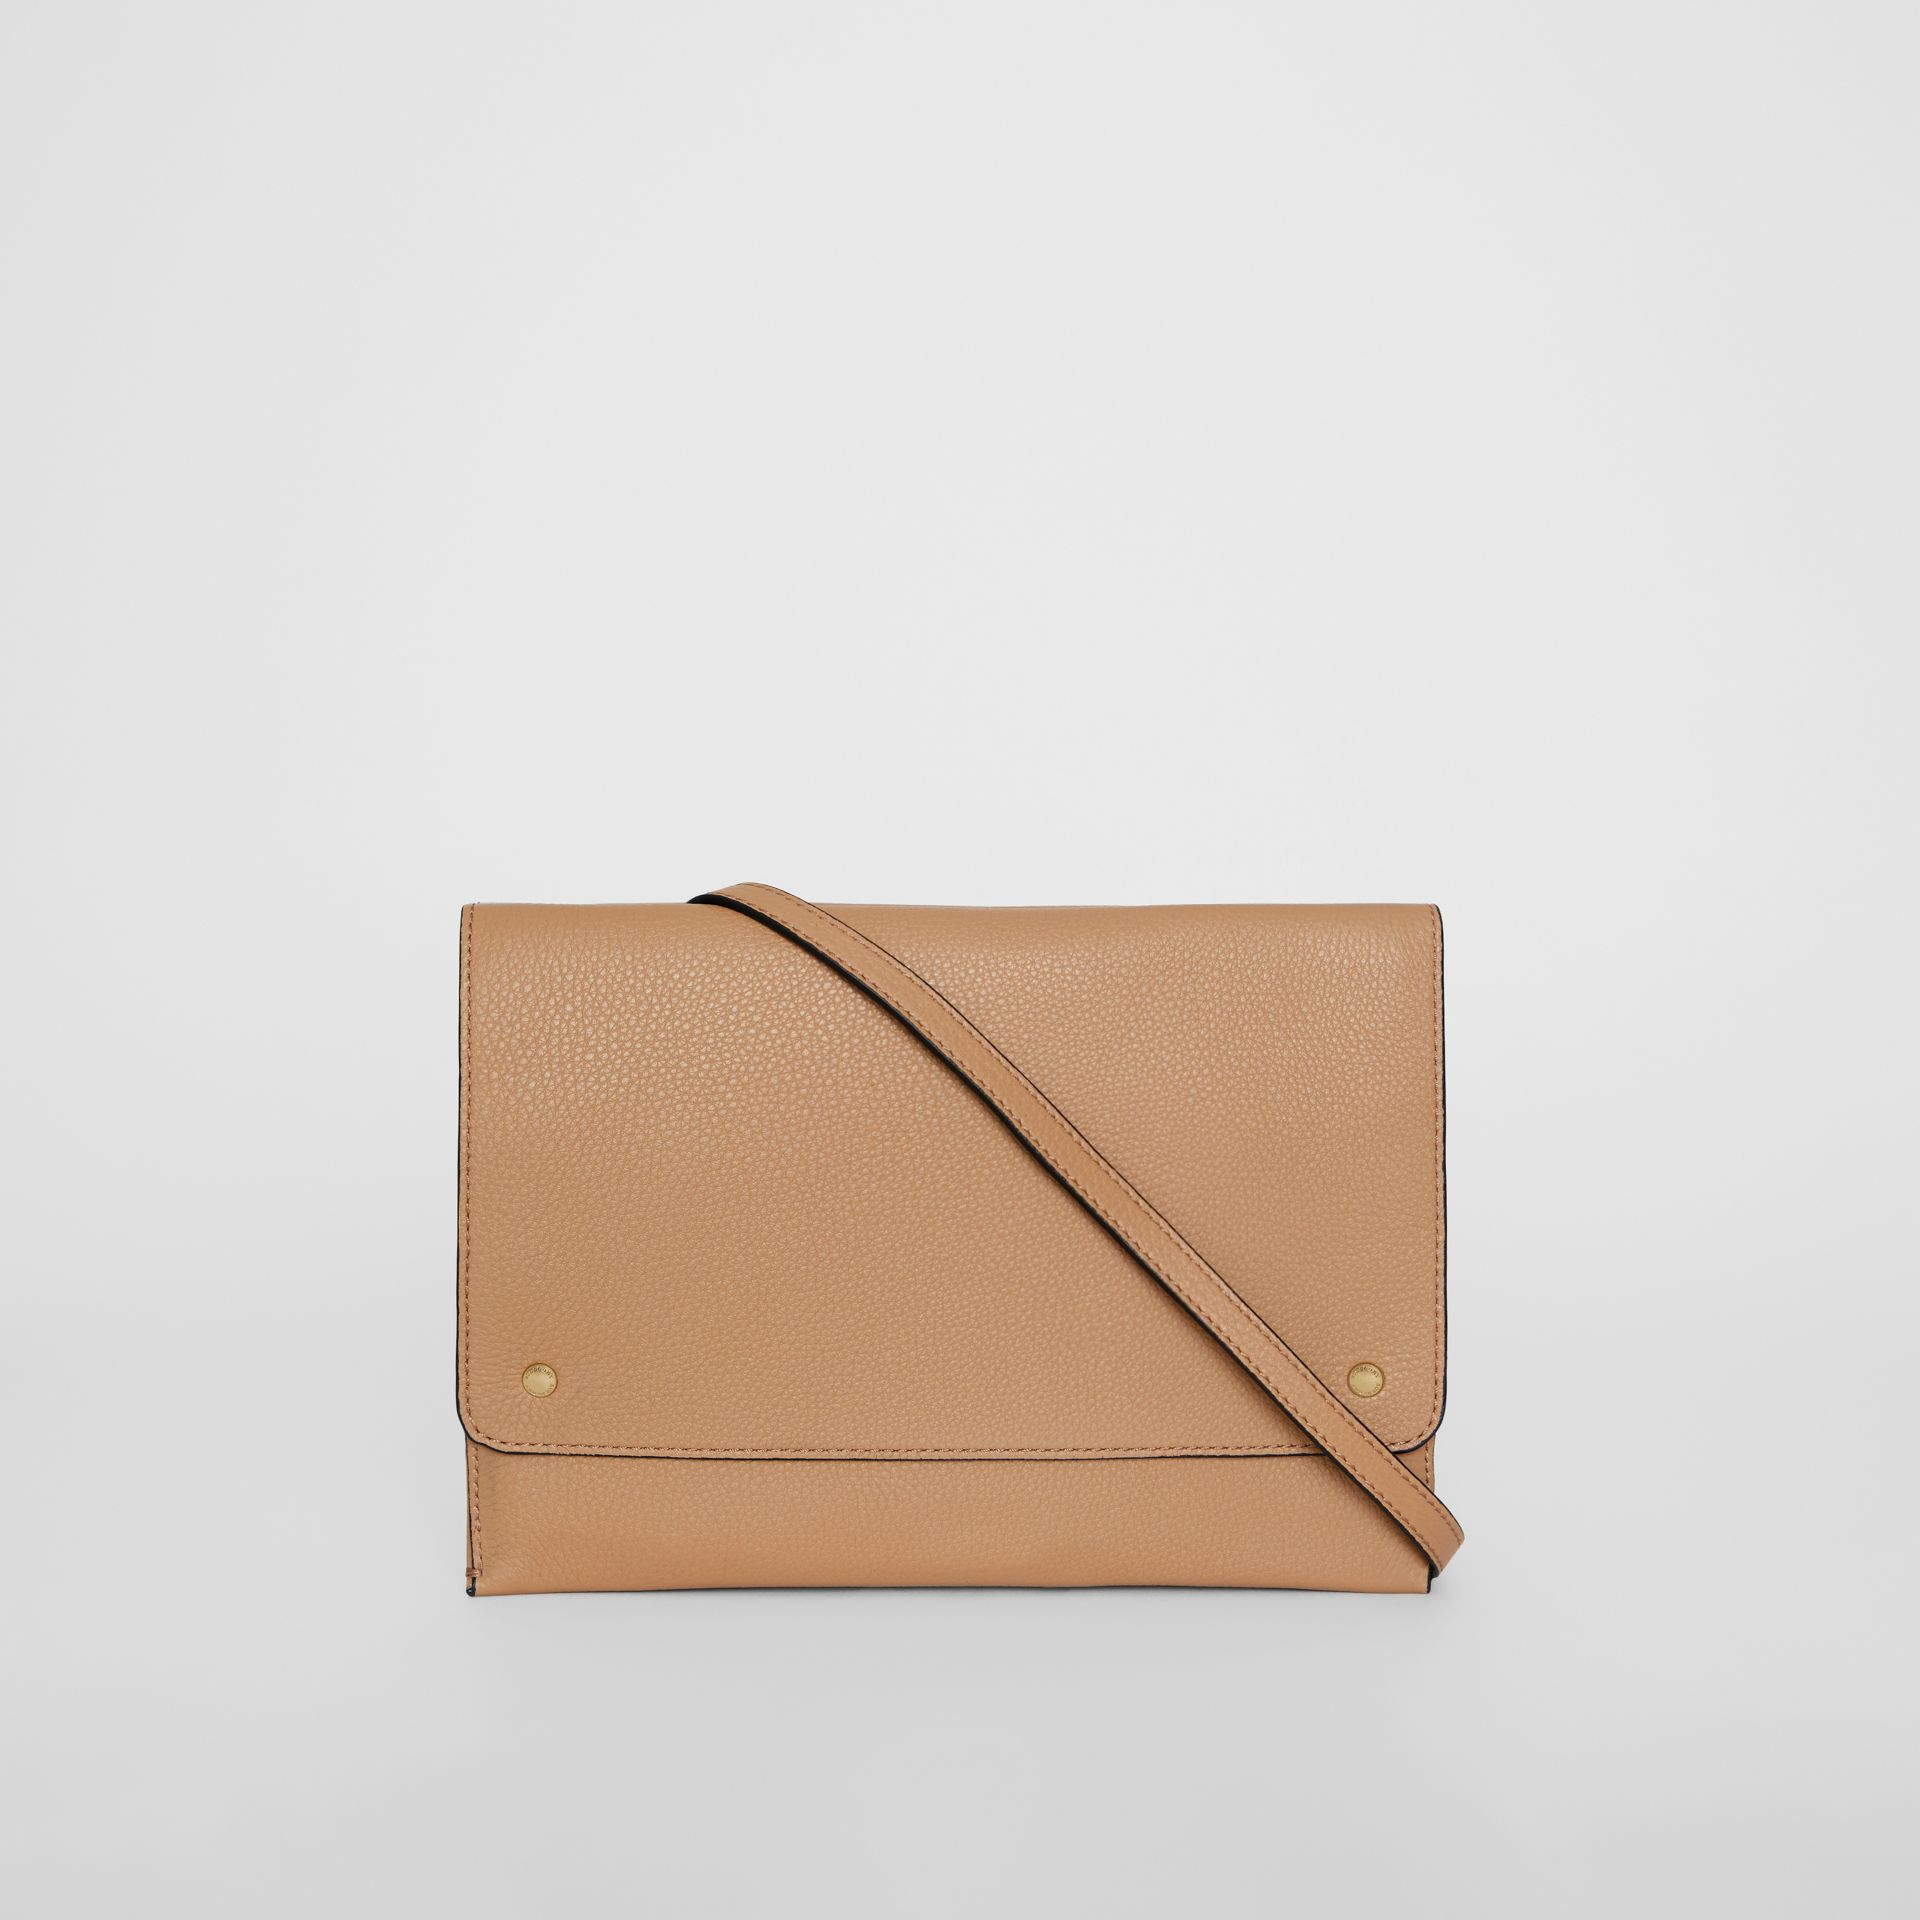 Leather Envelope Crossbody Bag in Light Camel - Women | Burberry United States - gallery image 7